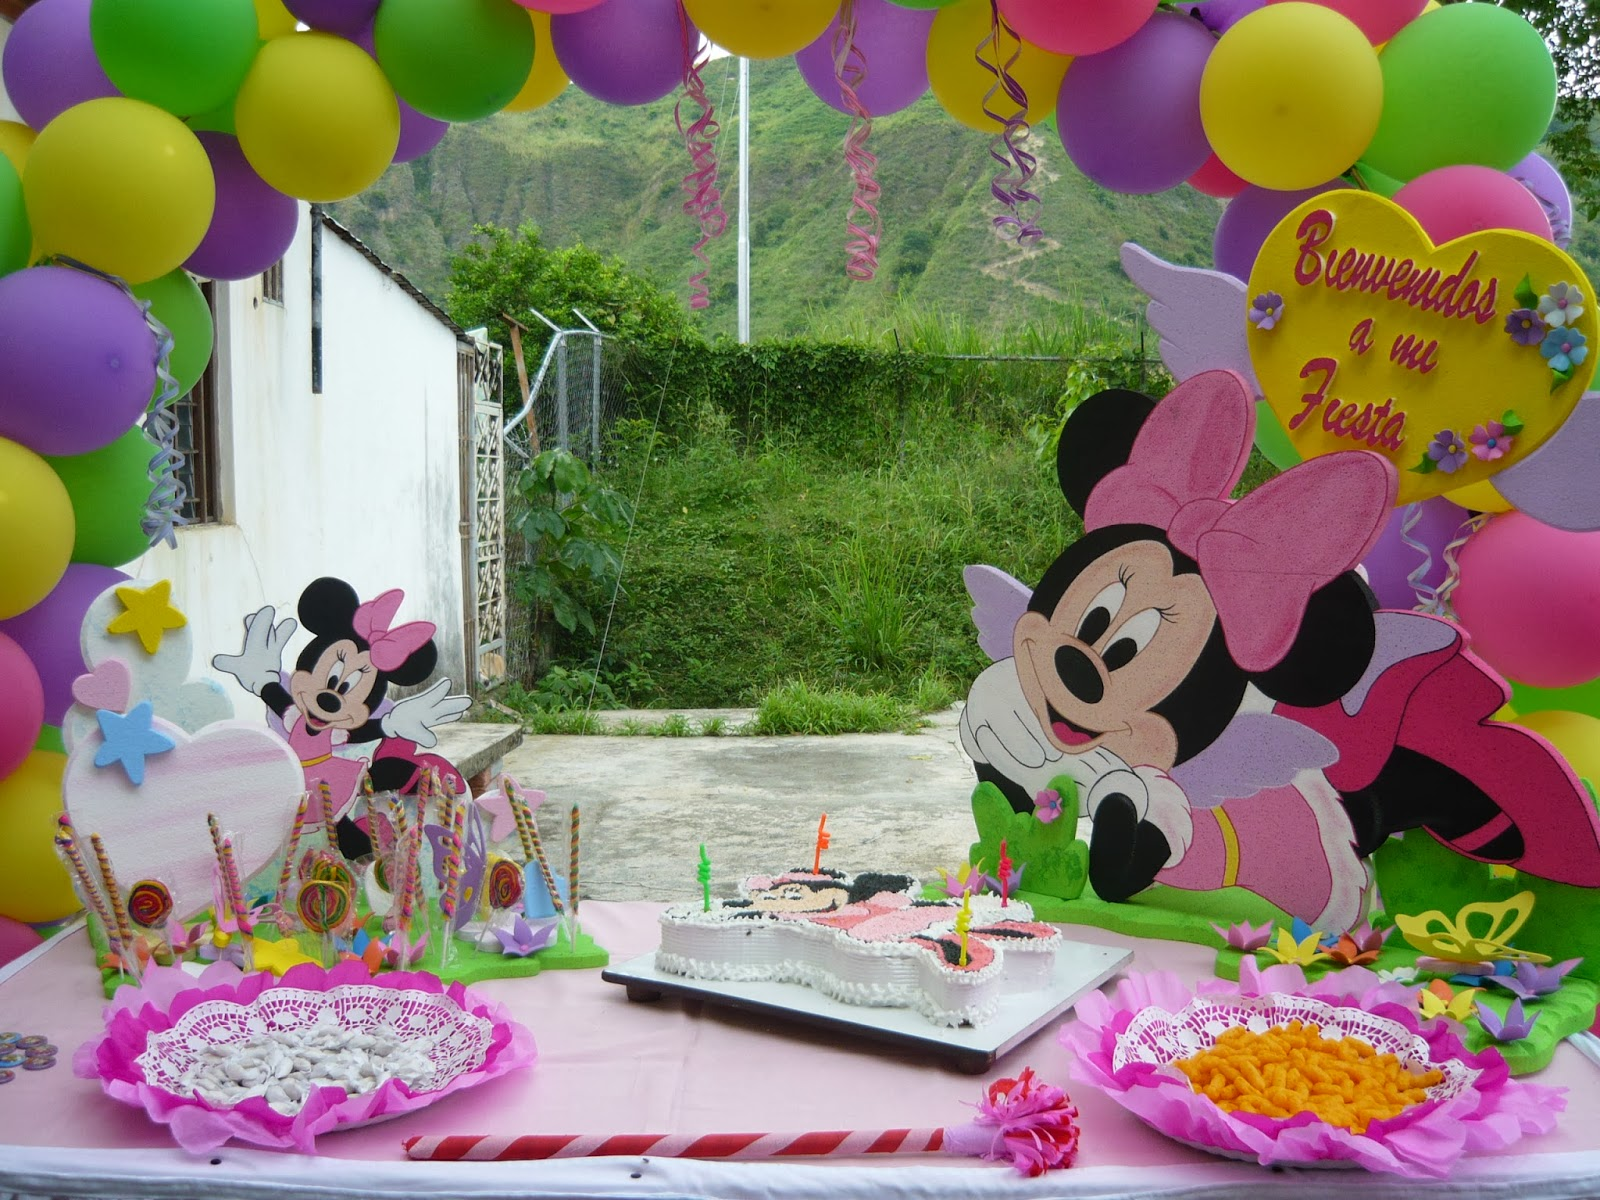 Imagenes fantasia y color ideas para fiesta infantil for Imagenes decoracion fiestas infantiles